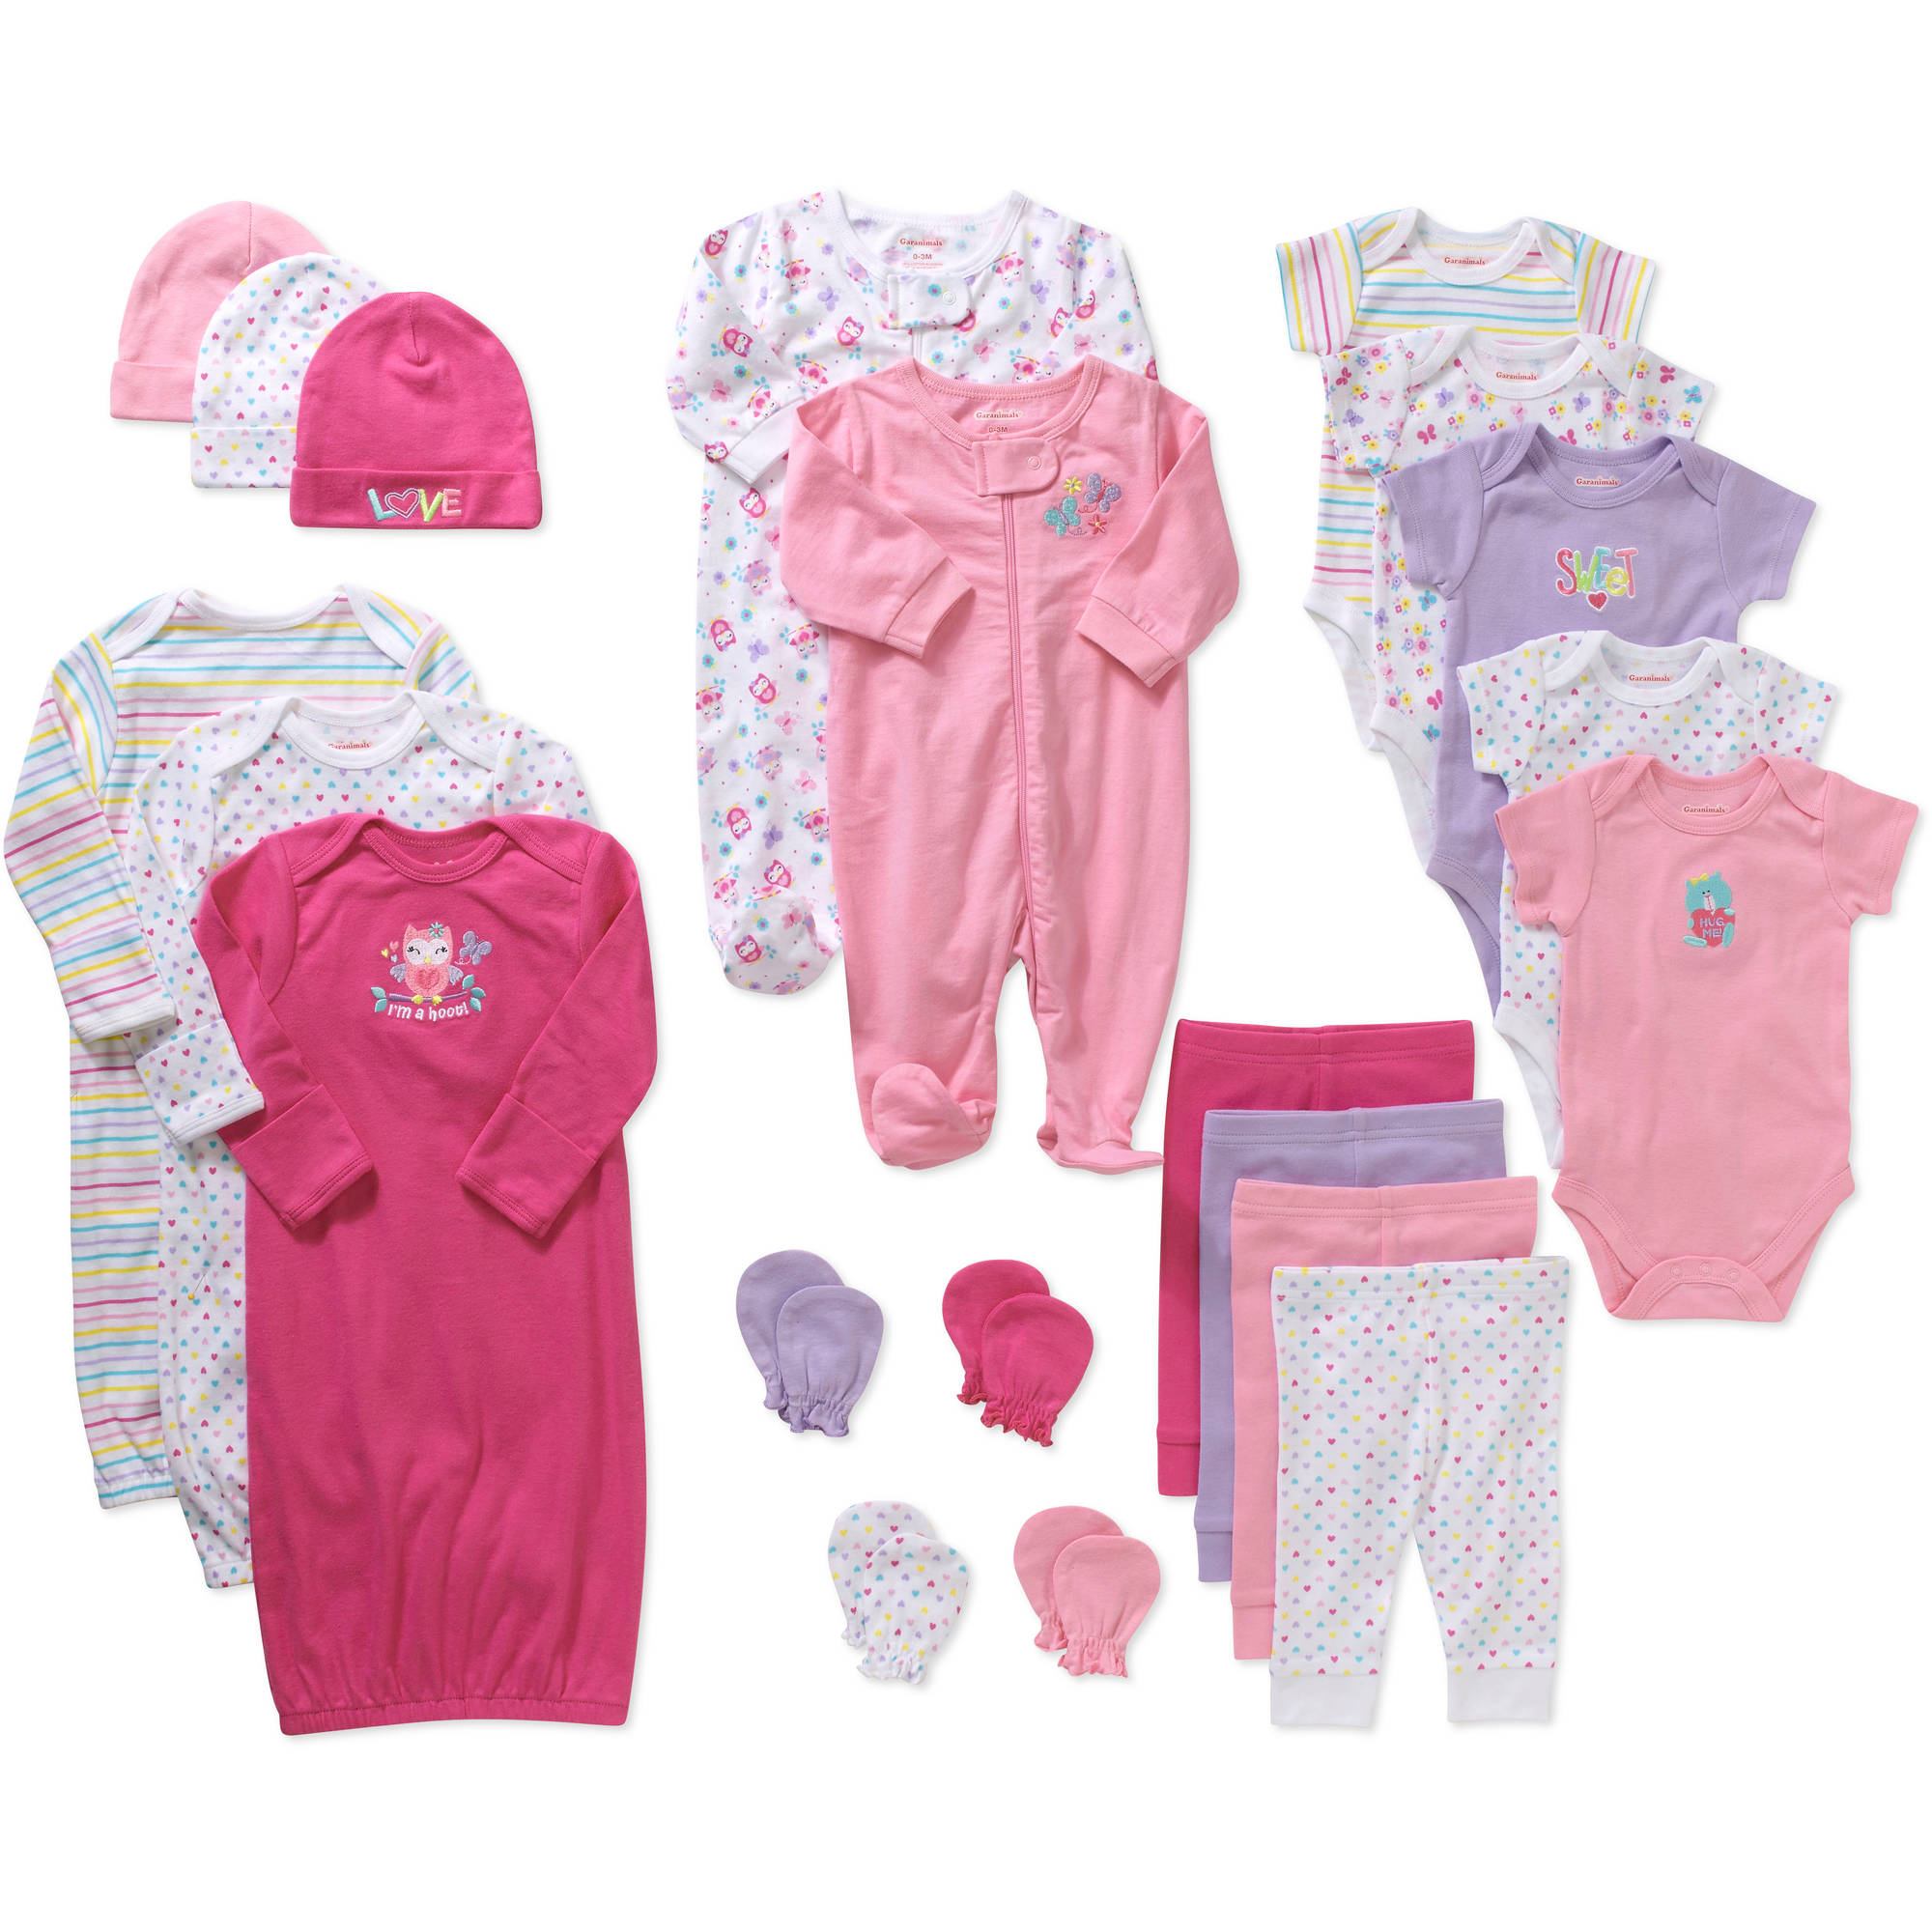 Garanimals Baby Girl 21 Piece Layette Baby Shower Gift Set